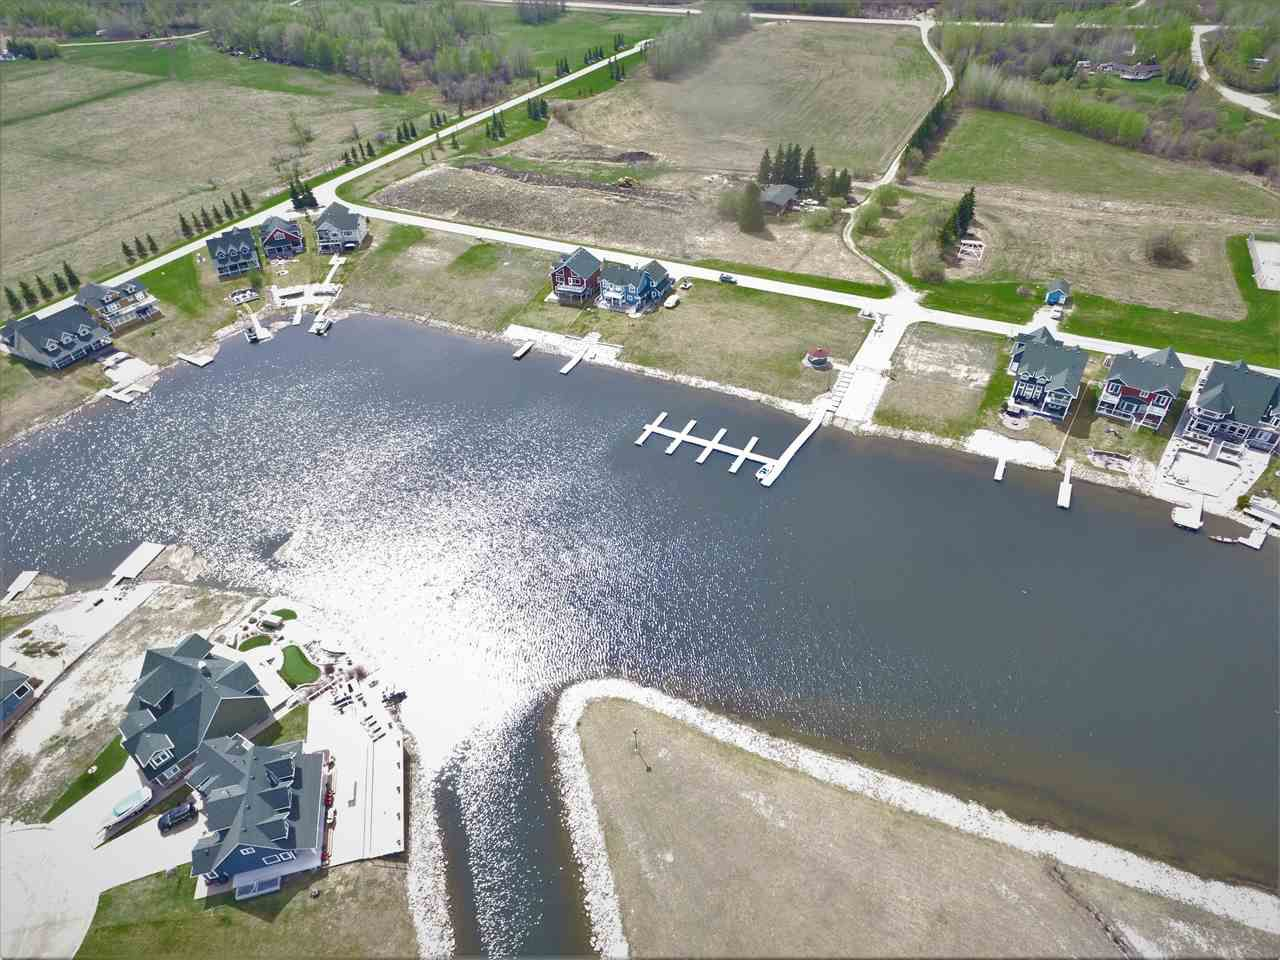 Main Photo: #35 Sunset Harbour: Rural Wetaskiwin County Rural Land/Vacant Lot for sale : MLS®# E4146322